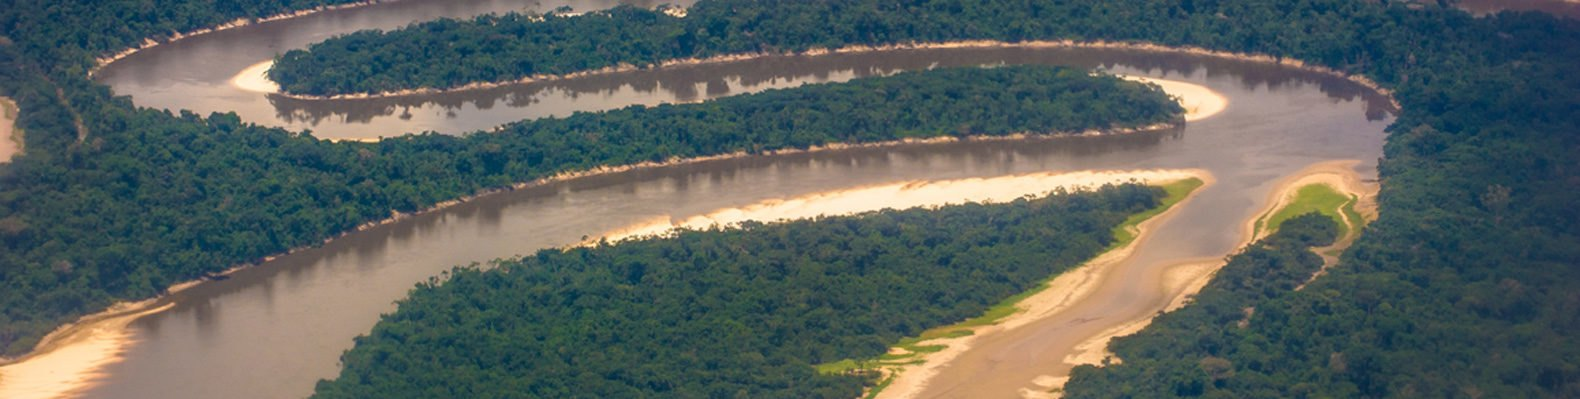 Nanay River in the Peruvian Amazon surrounded by greenery